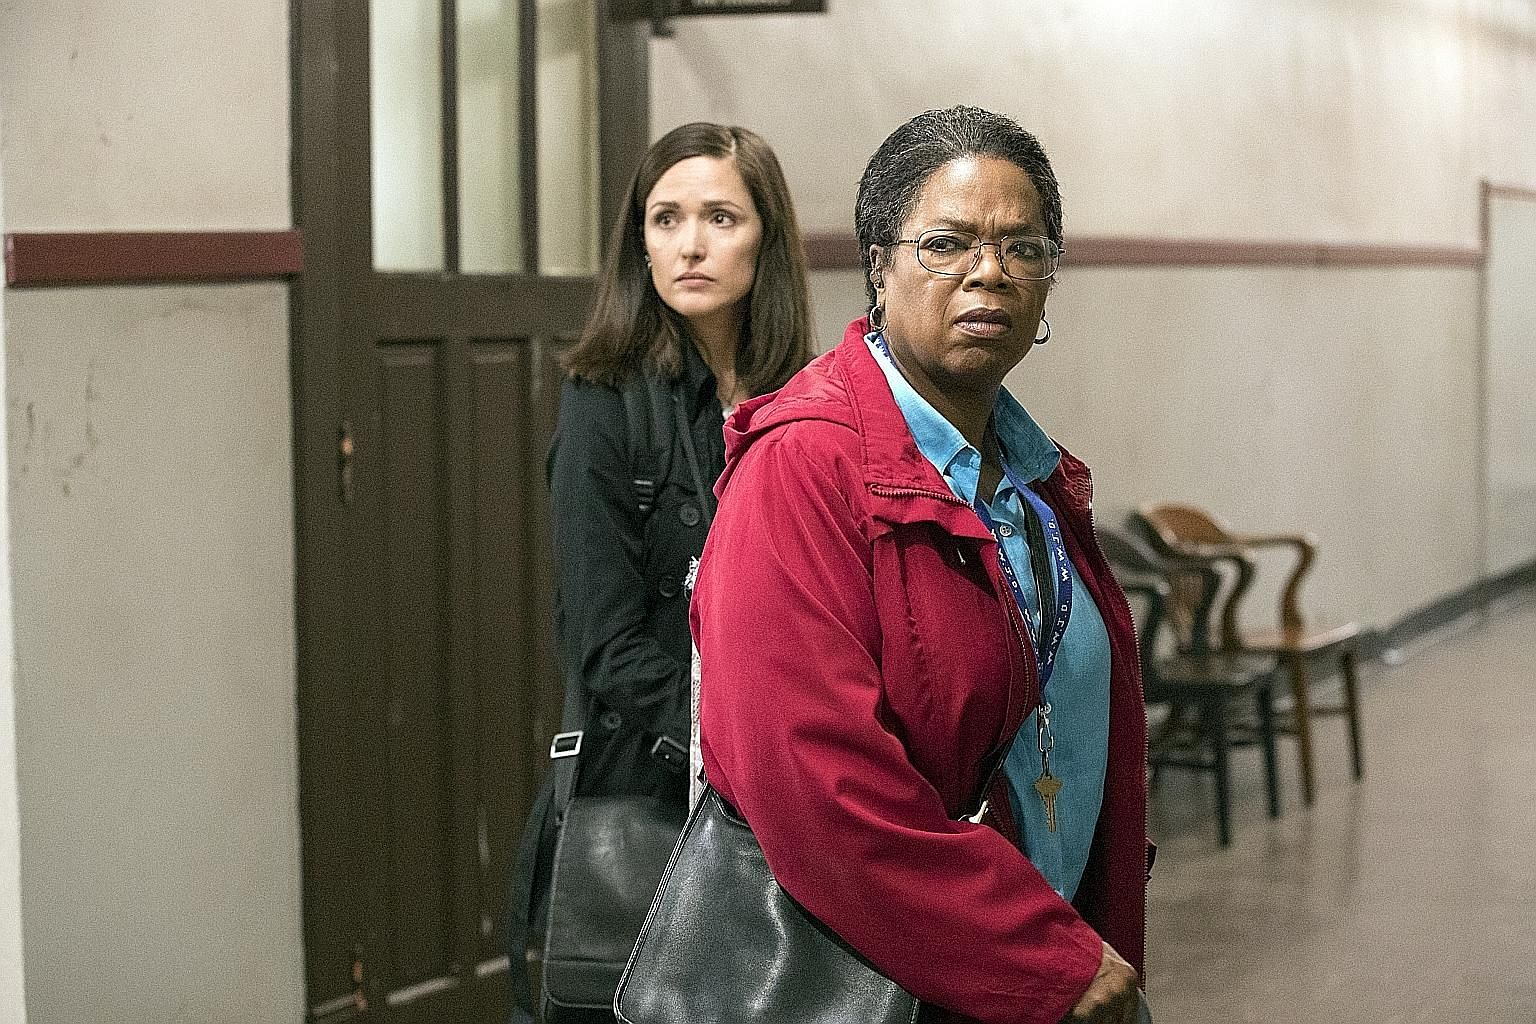 Oprah Winfrey (above right) and Rose Byrne in The Immortal Life Of Henrietta Lacks, about the dying African- American woman (left) whose cervical cancer cells were harvested six decades ago without her knowledge or consent.